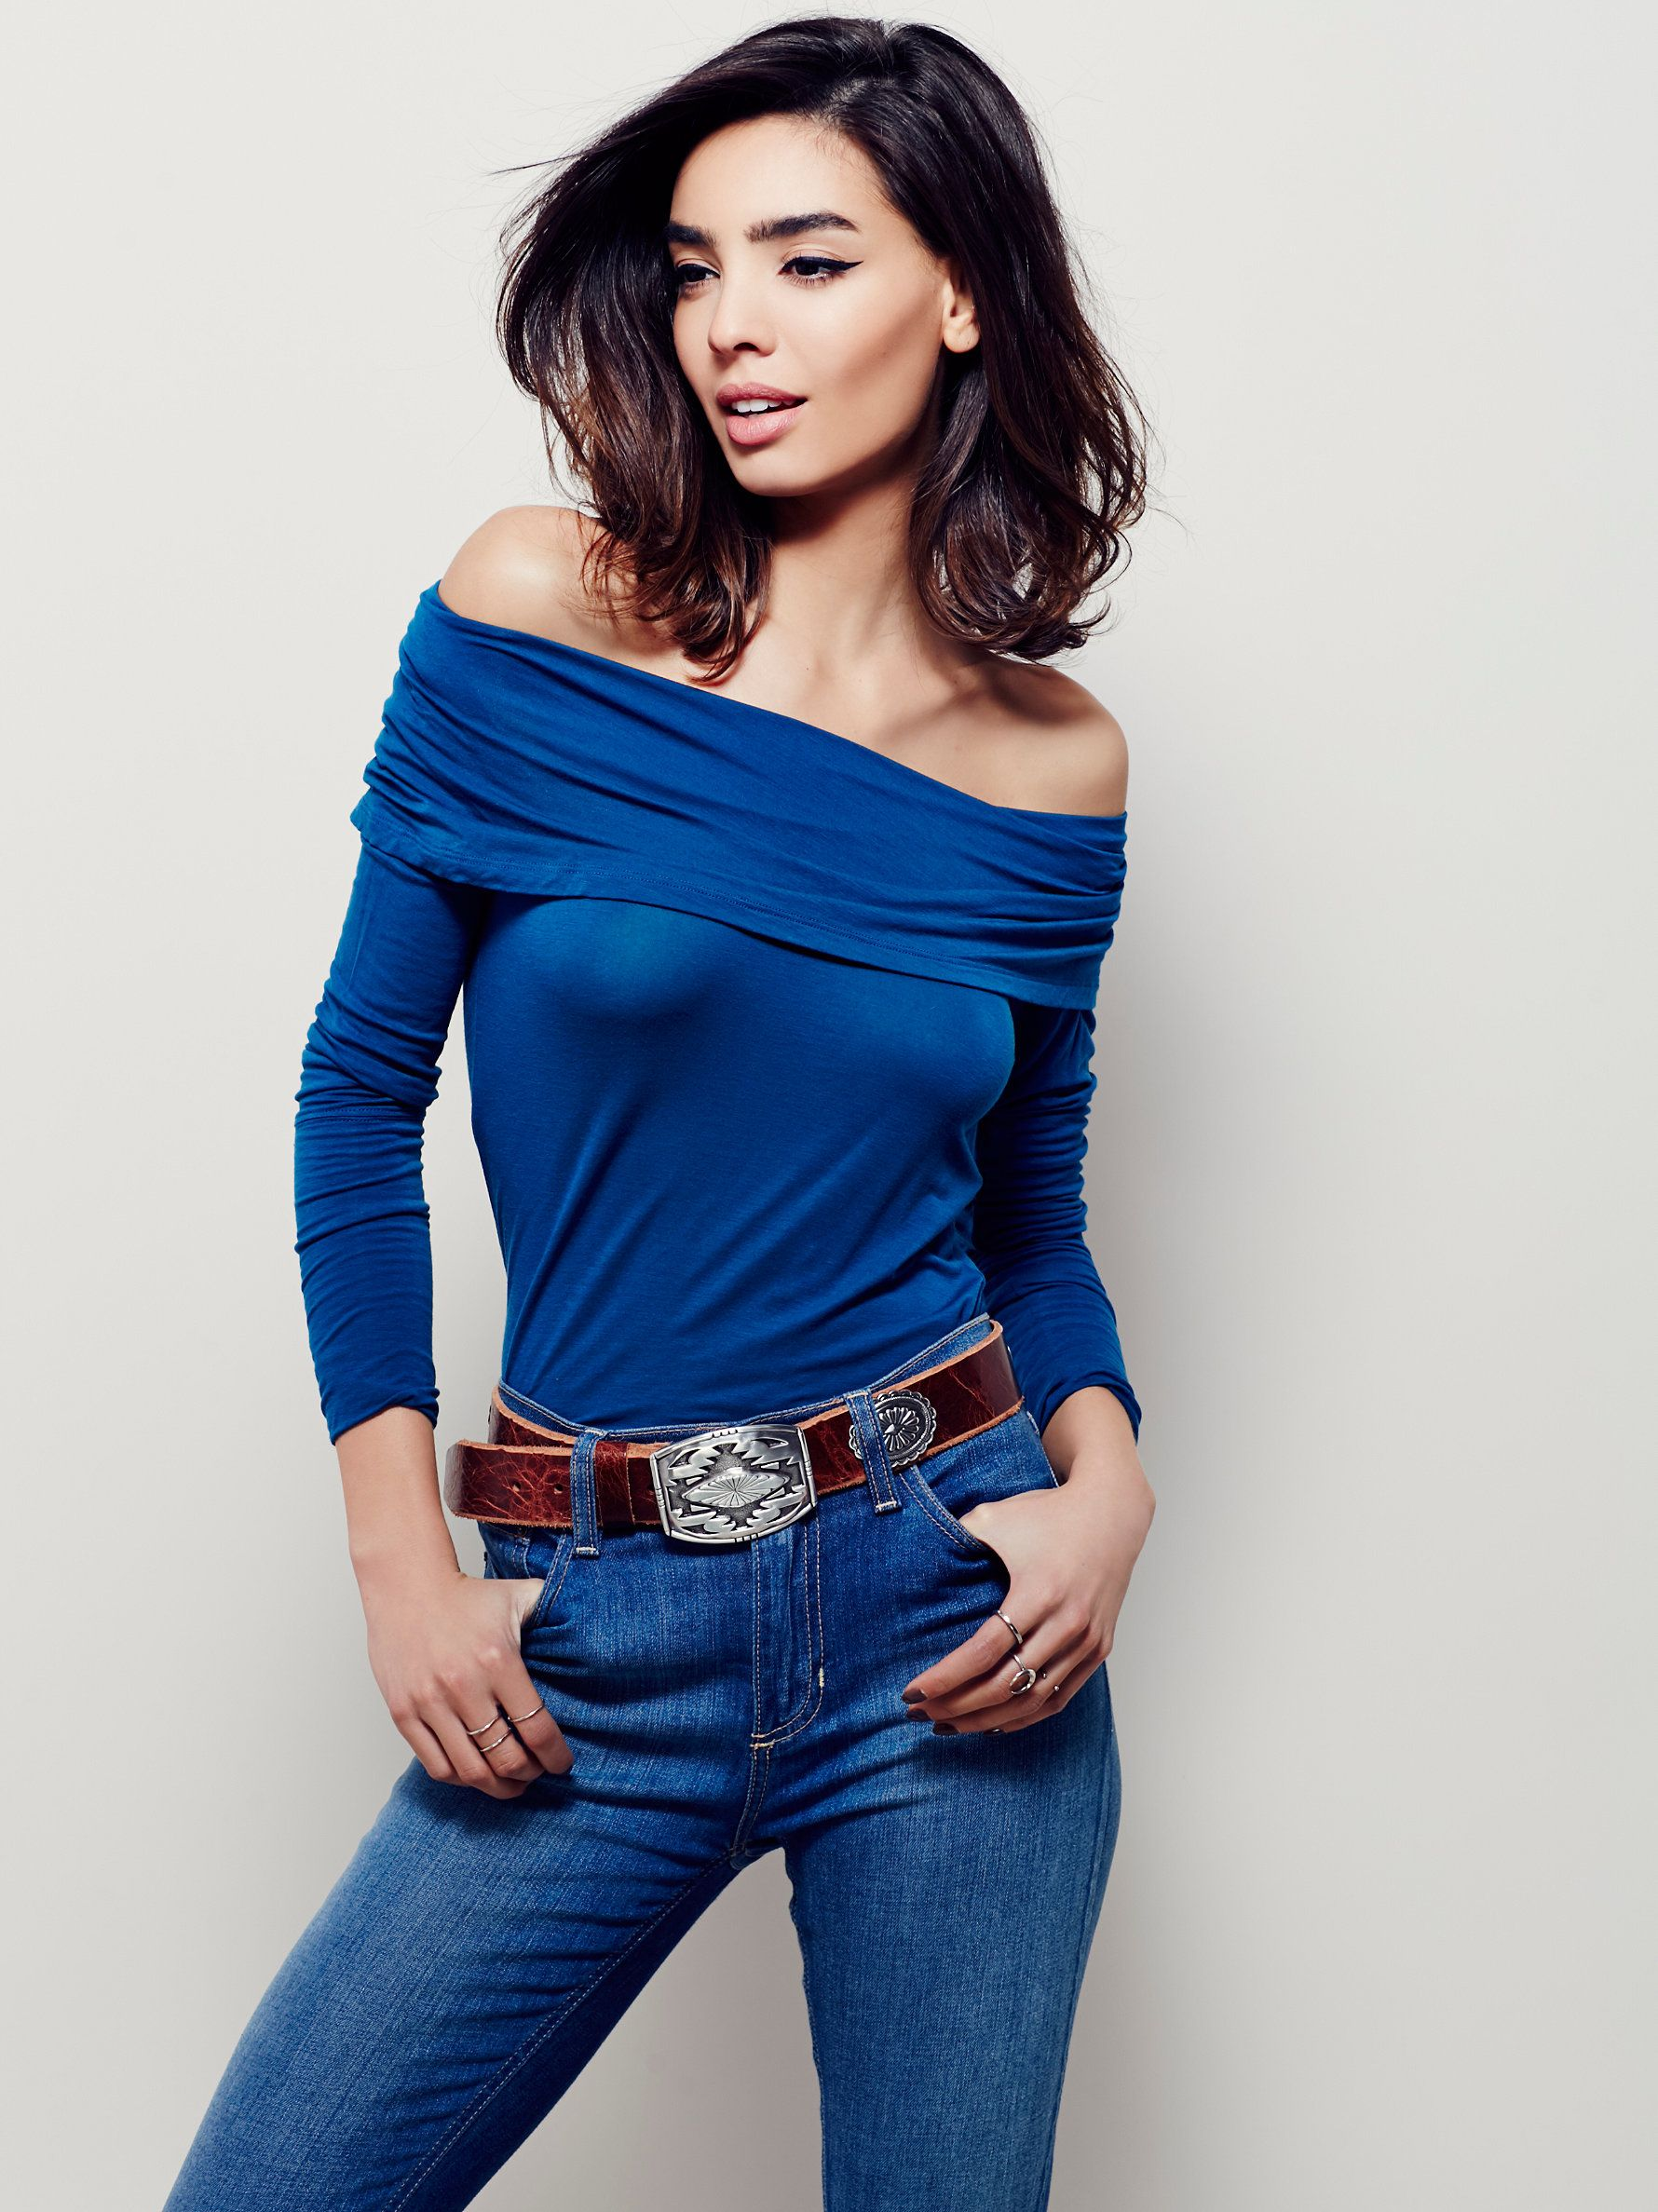 Cassiopia Tee | So-soft jersey off-the-shoulder top with a fitted silhouette and sultry rollover neckline.